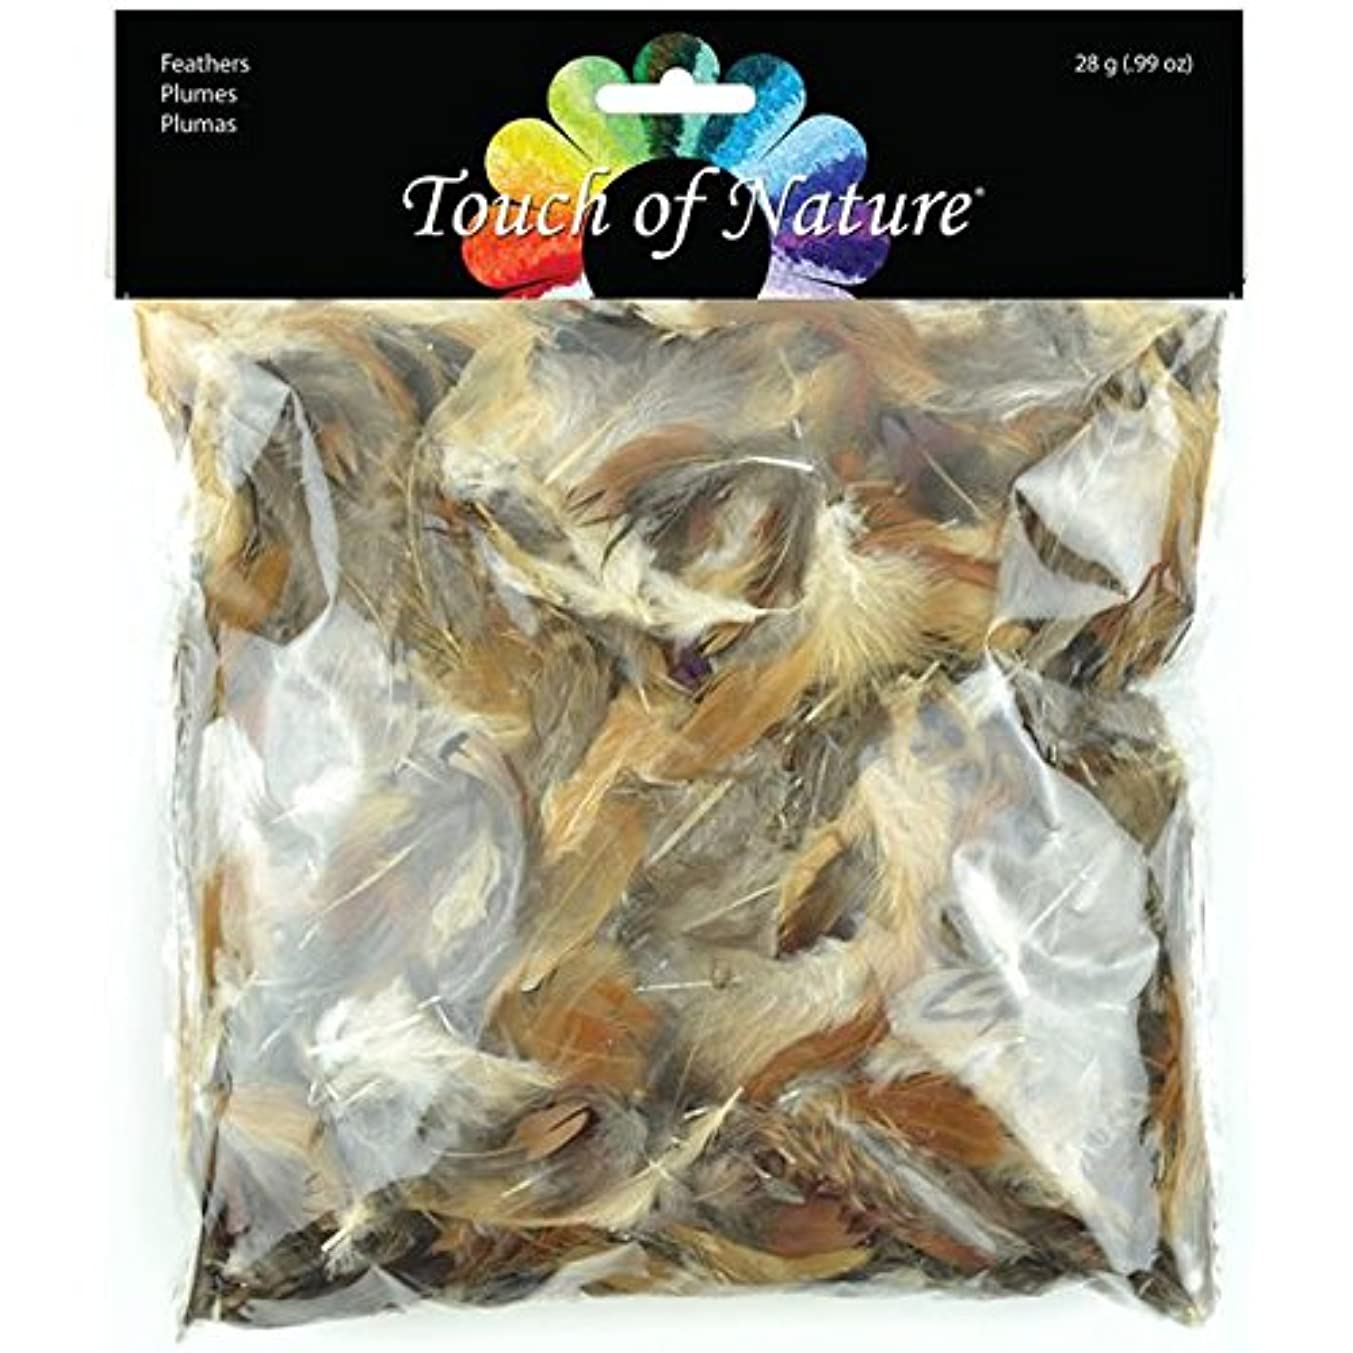 Touch of Nature 39917 Feather Value Pack Natural Mix for Arts and Craft, 28gm